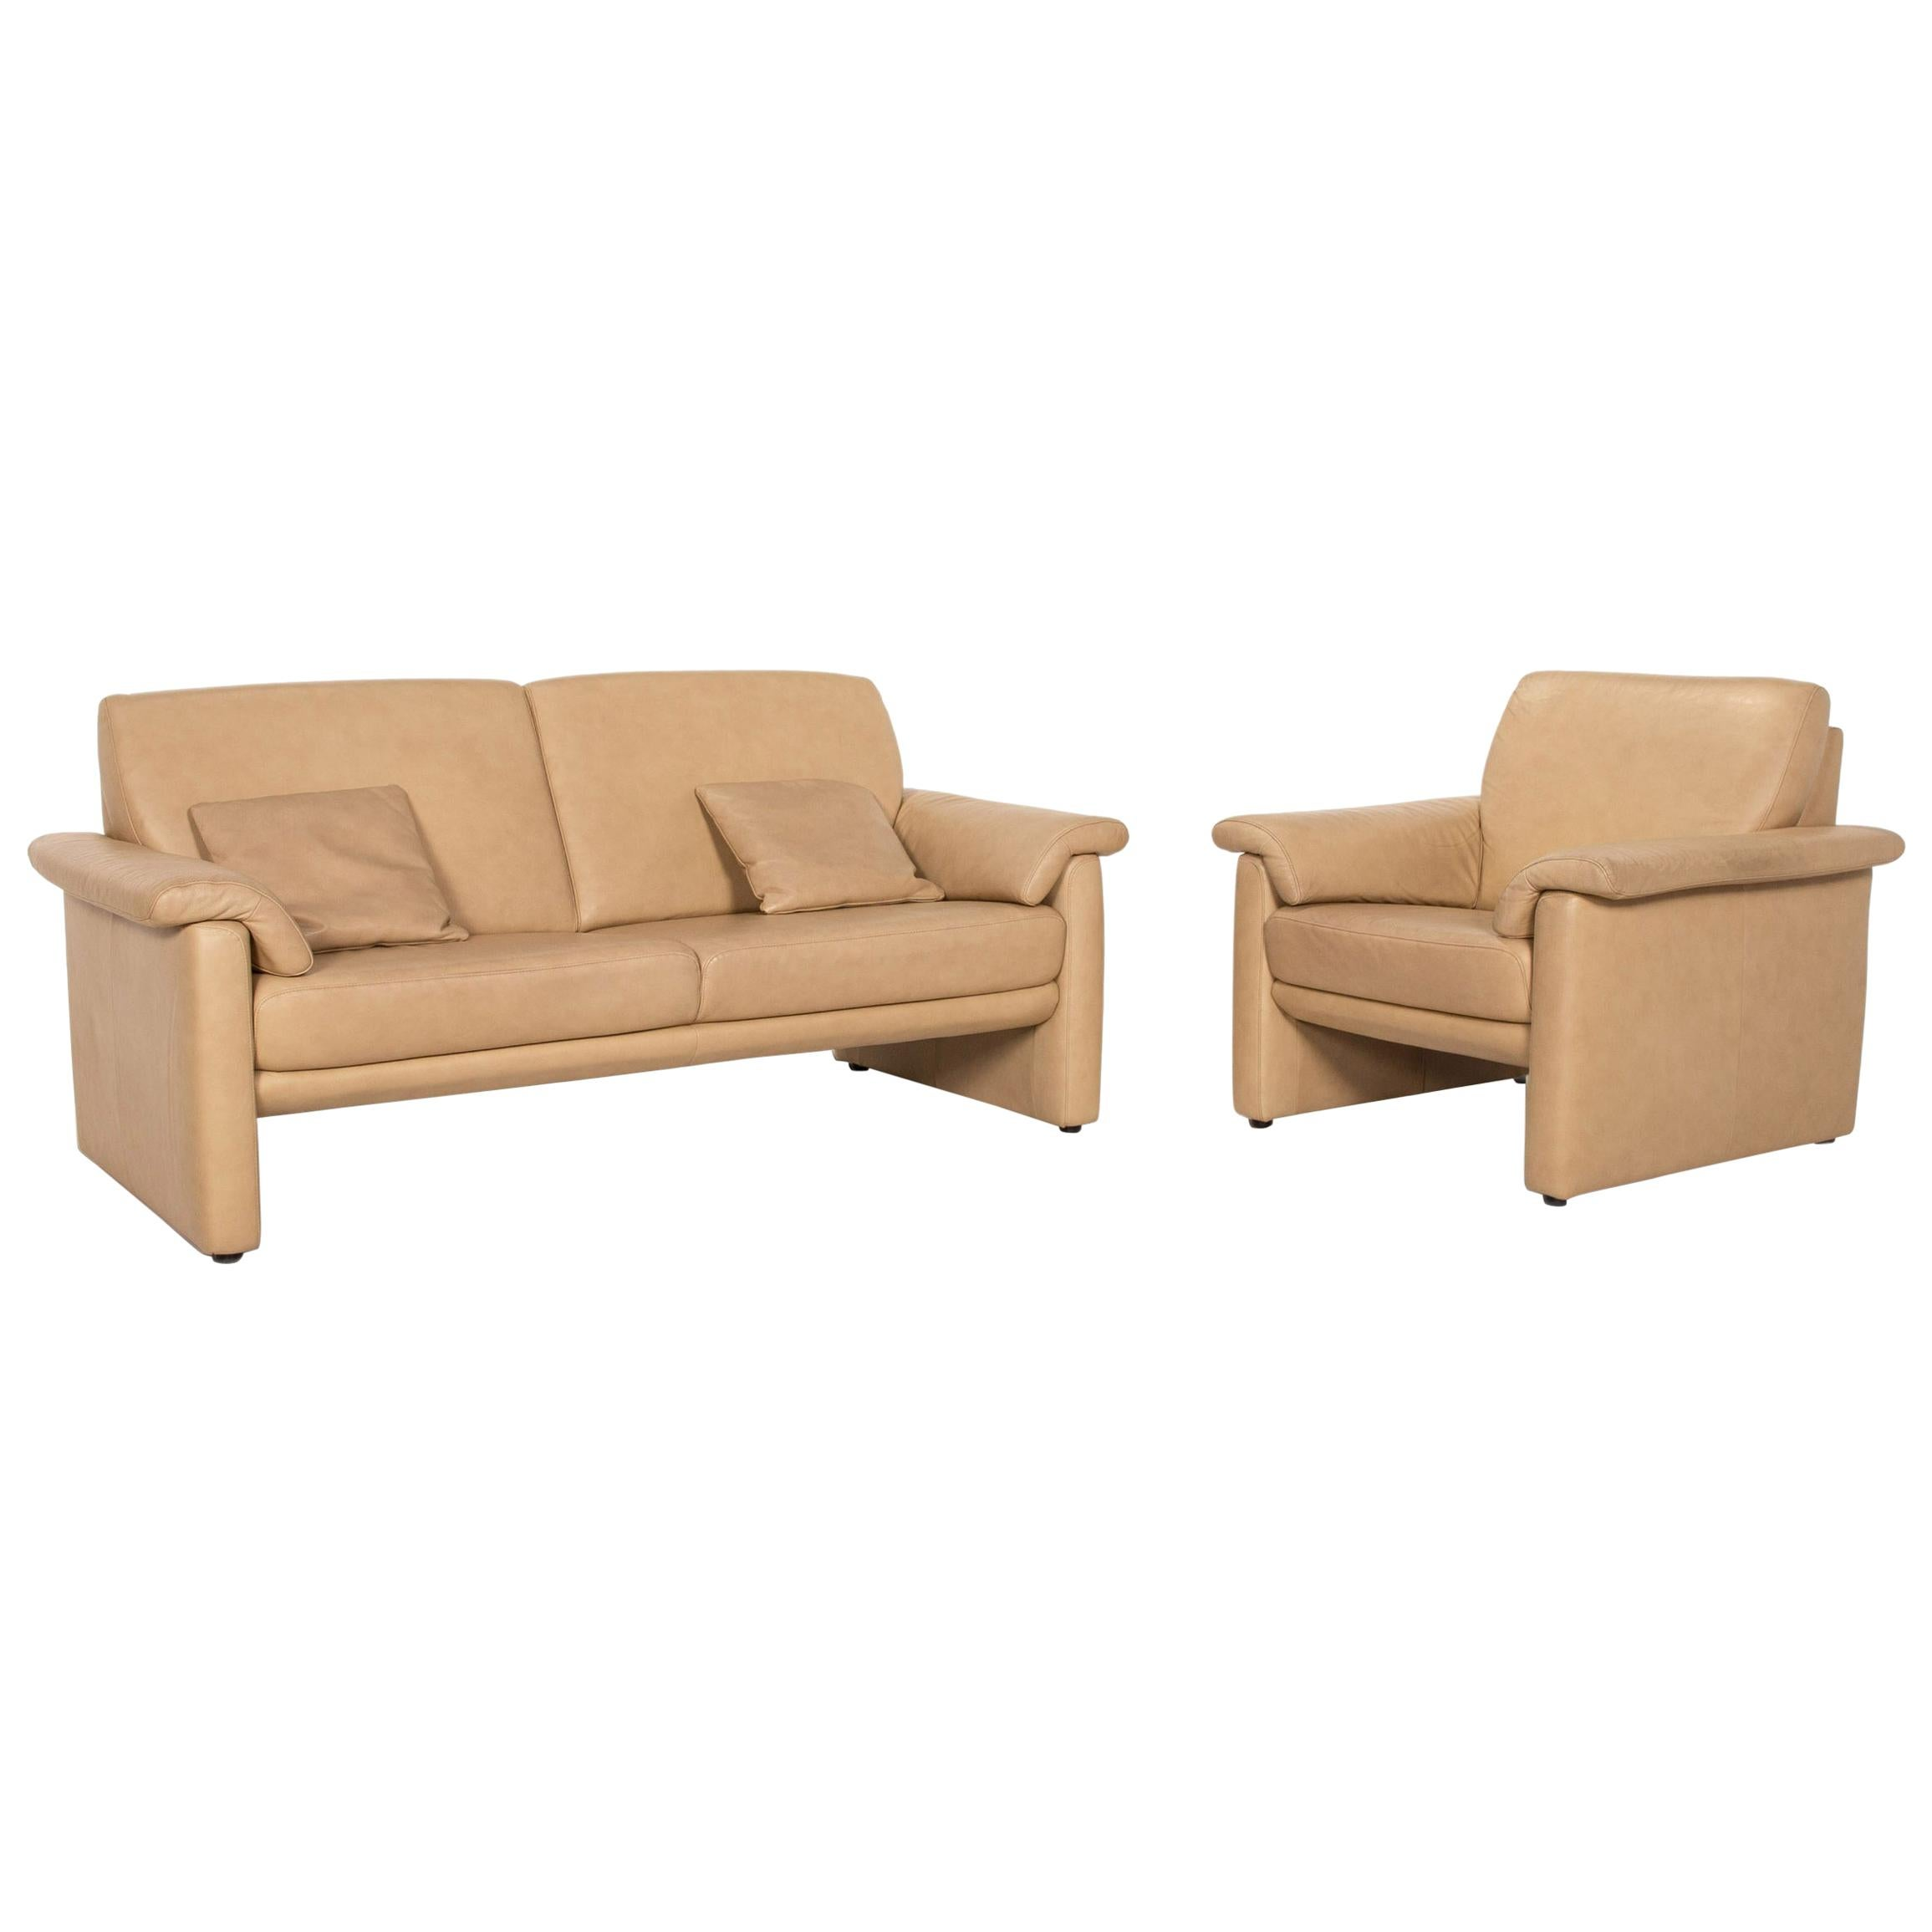 Willi Schillig Lucca Leather Sofa Set Beige 1 Two-Seater 1 Armchair